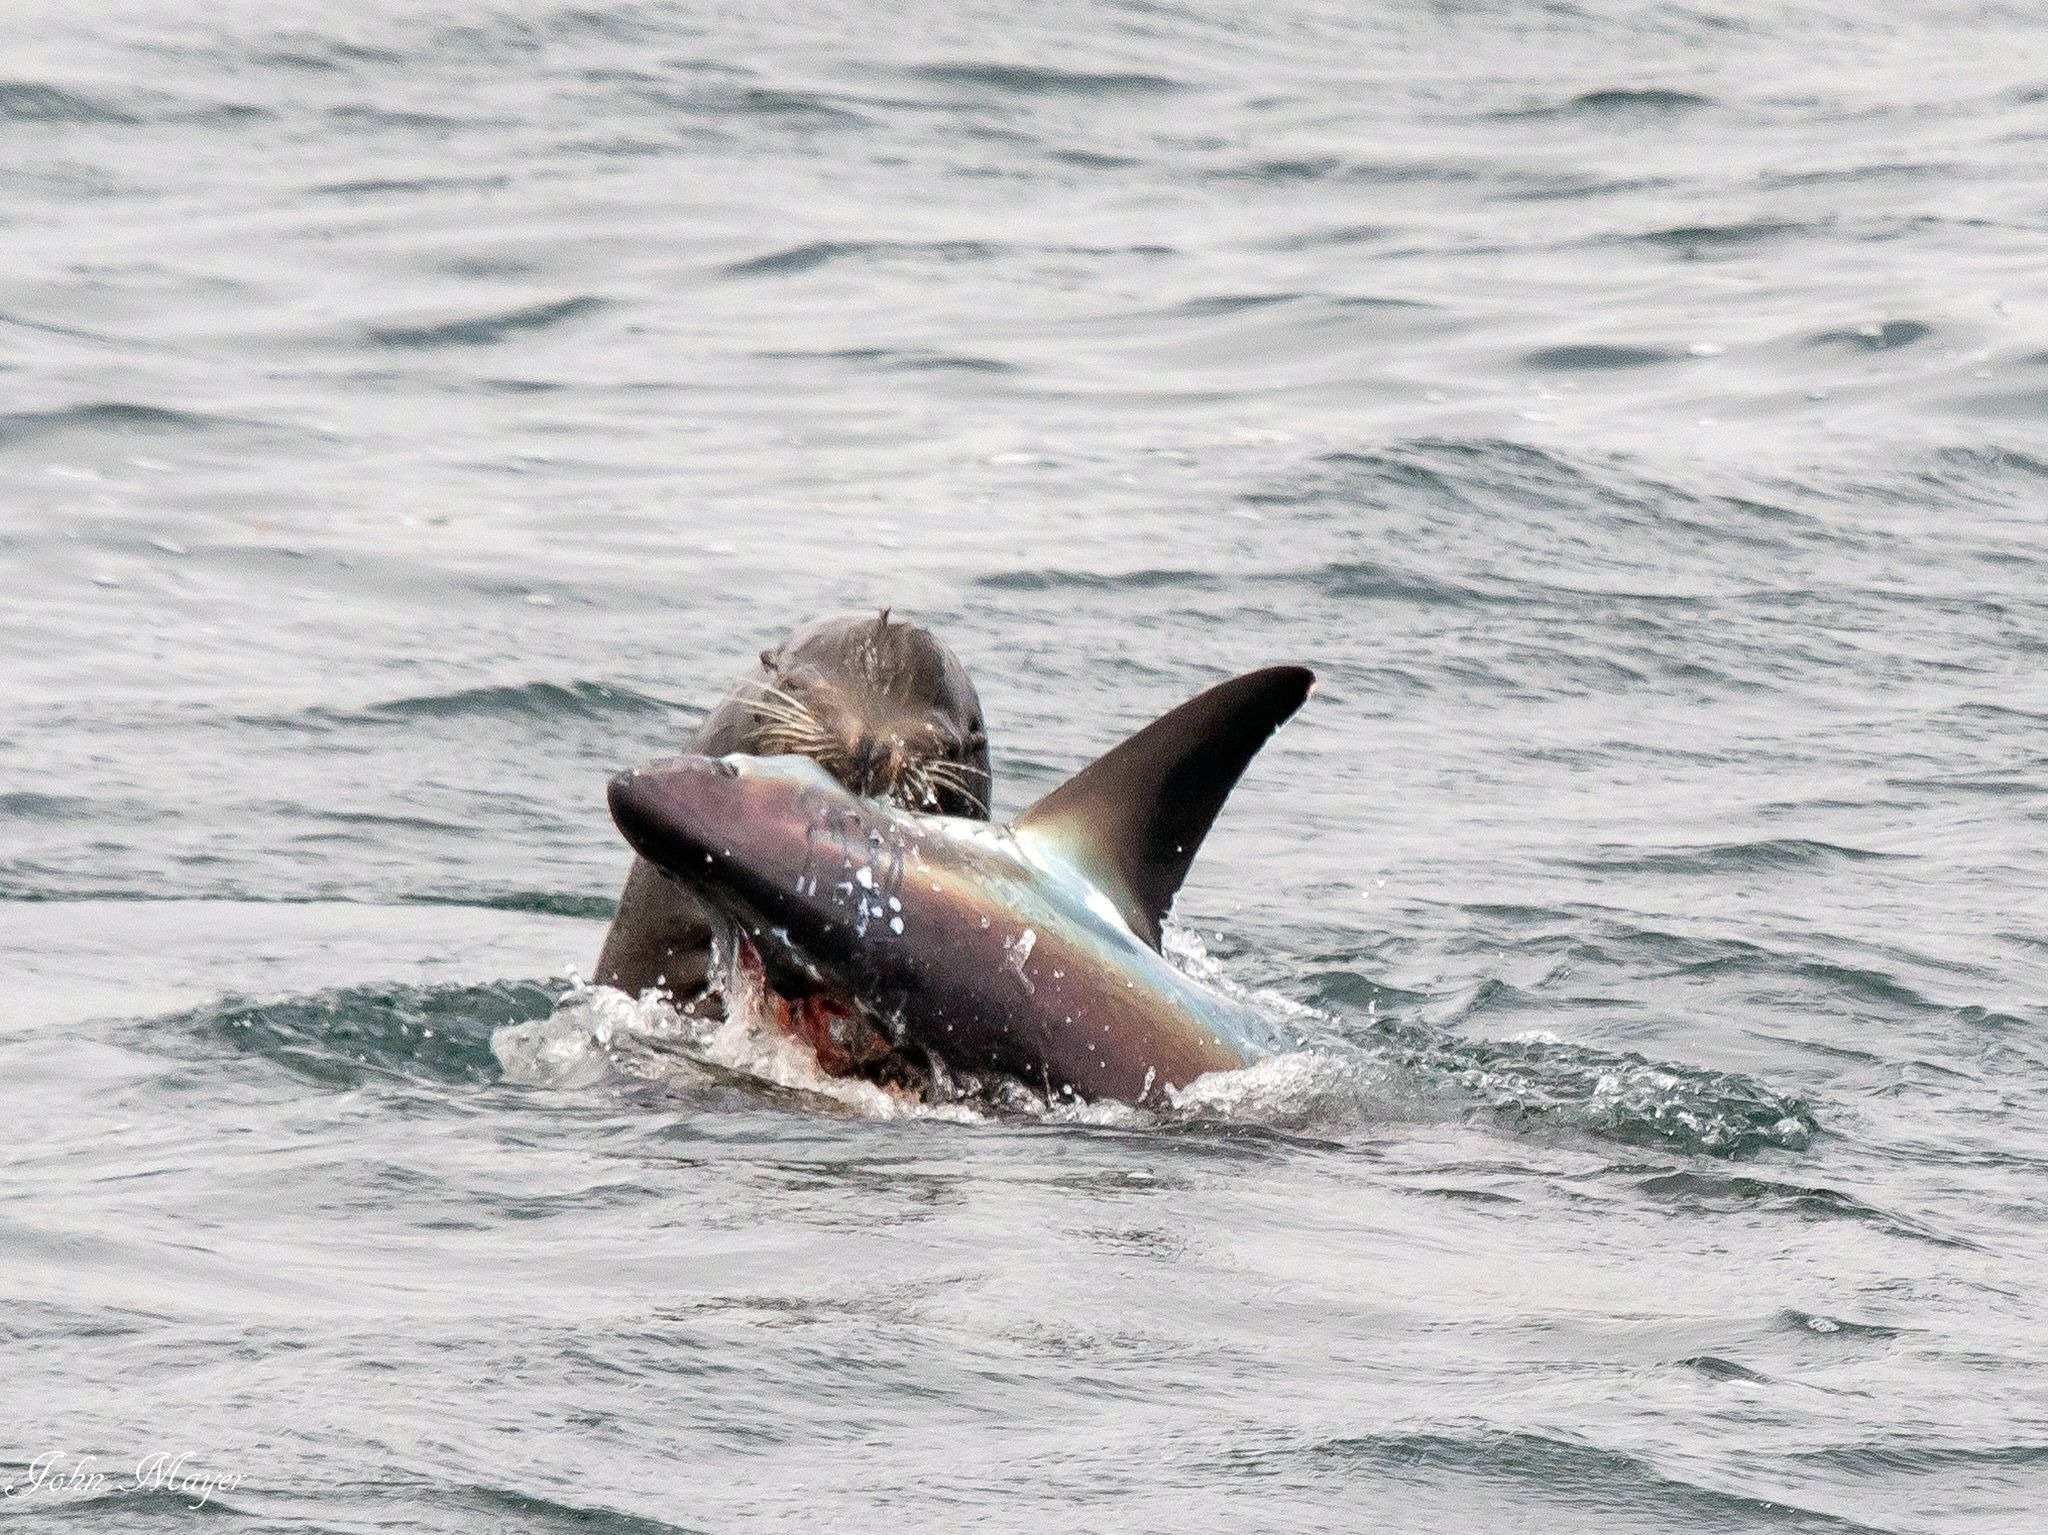 Newport Beach, CA: A sea lion attacks a thresher shark. This image is from Shark V. Predator. [Photo of the day - August 2017]